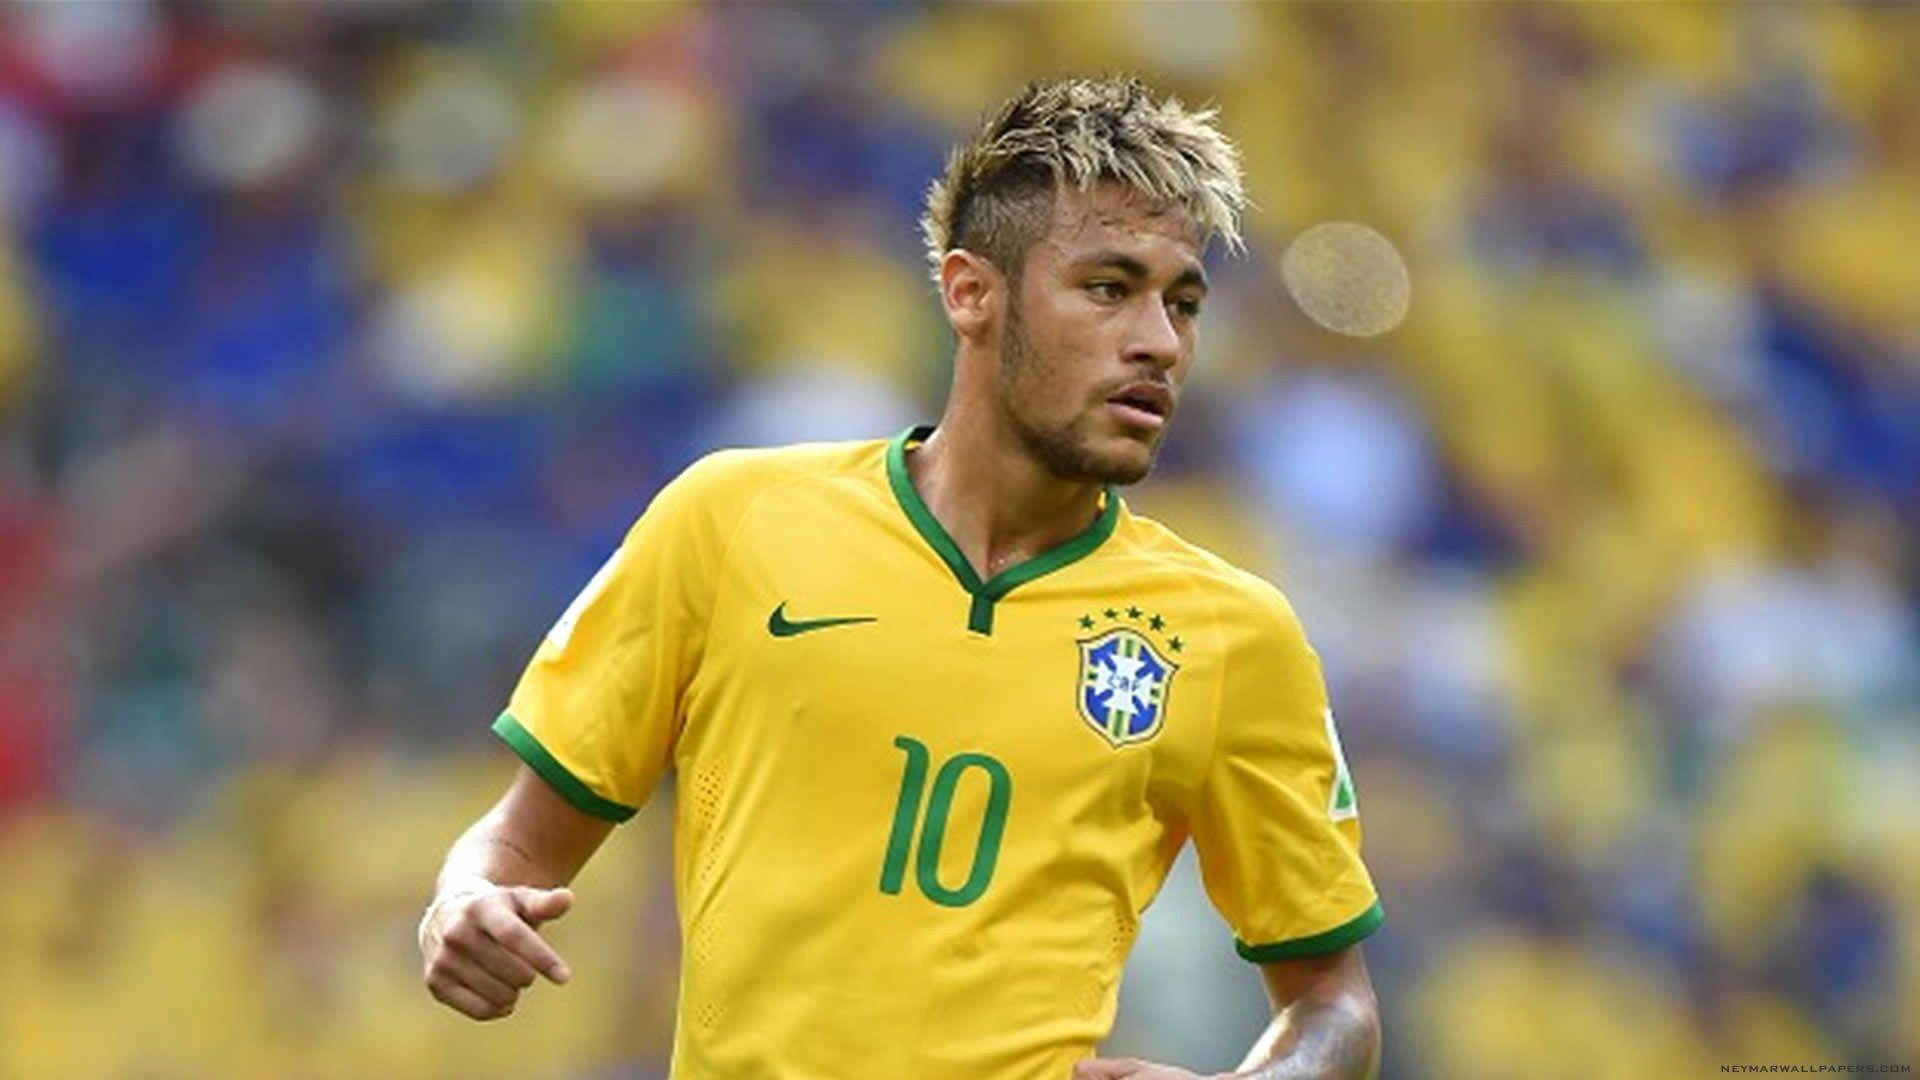 Neymar Wallpaper New Neymar Brazil Wallpaper 5 Neymar Wallpapers ...